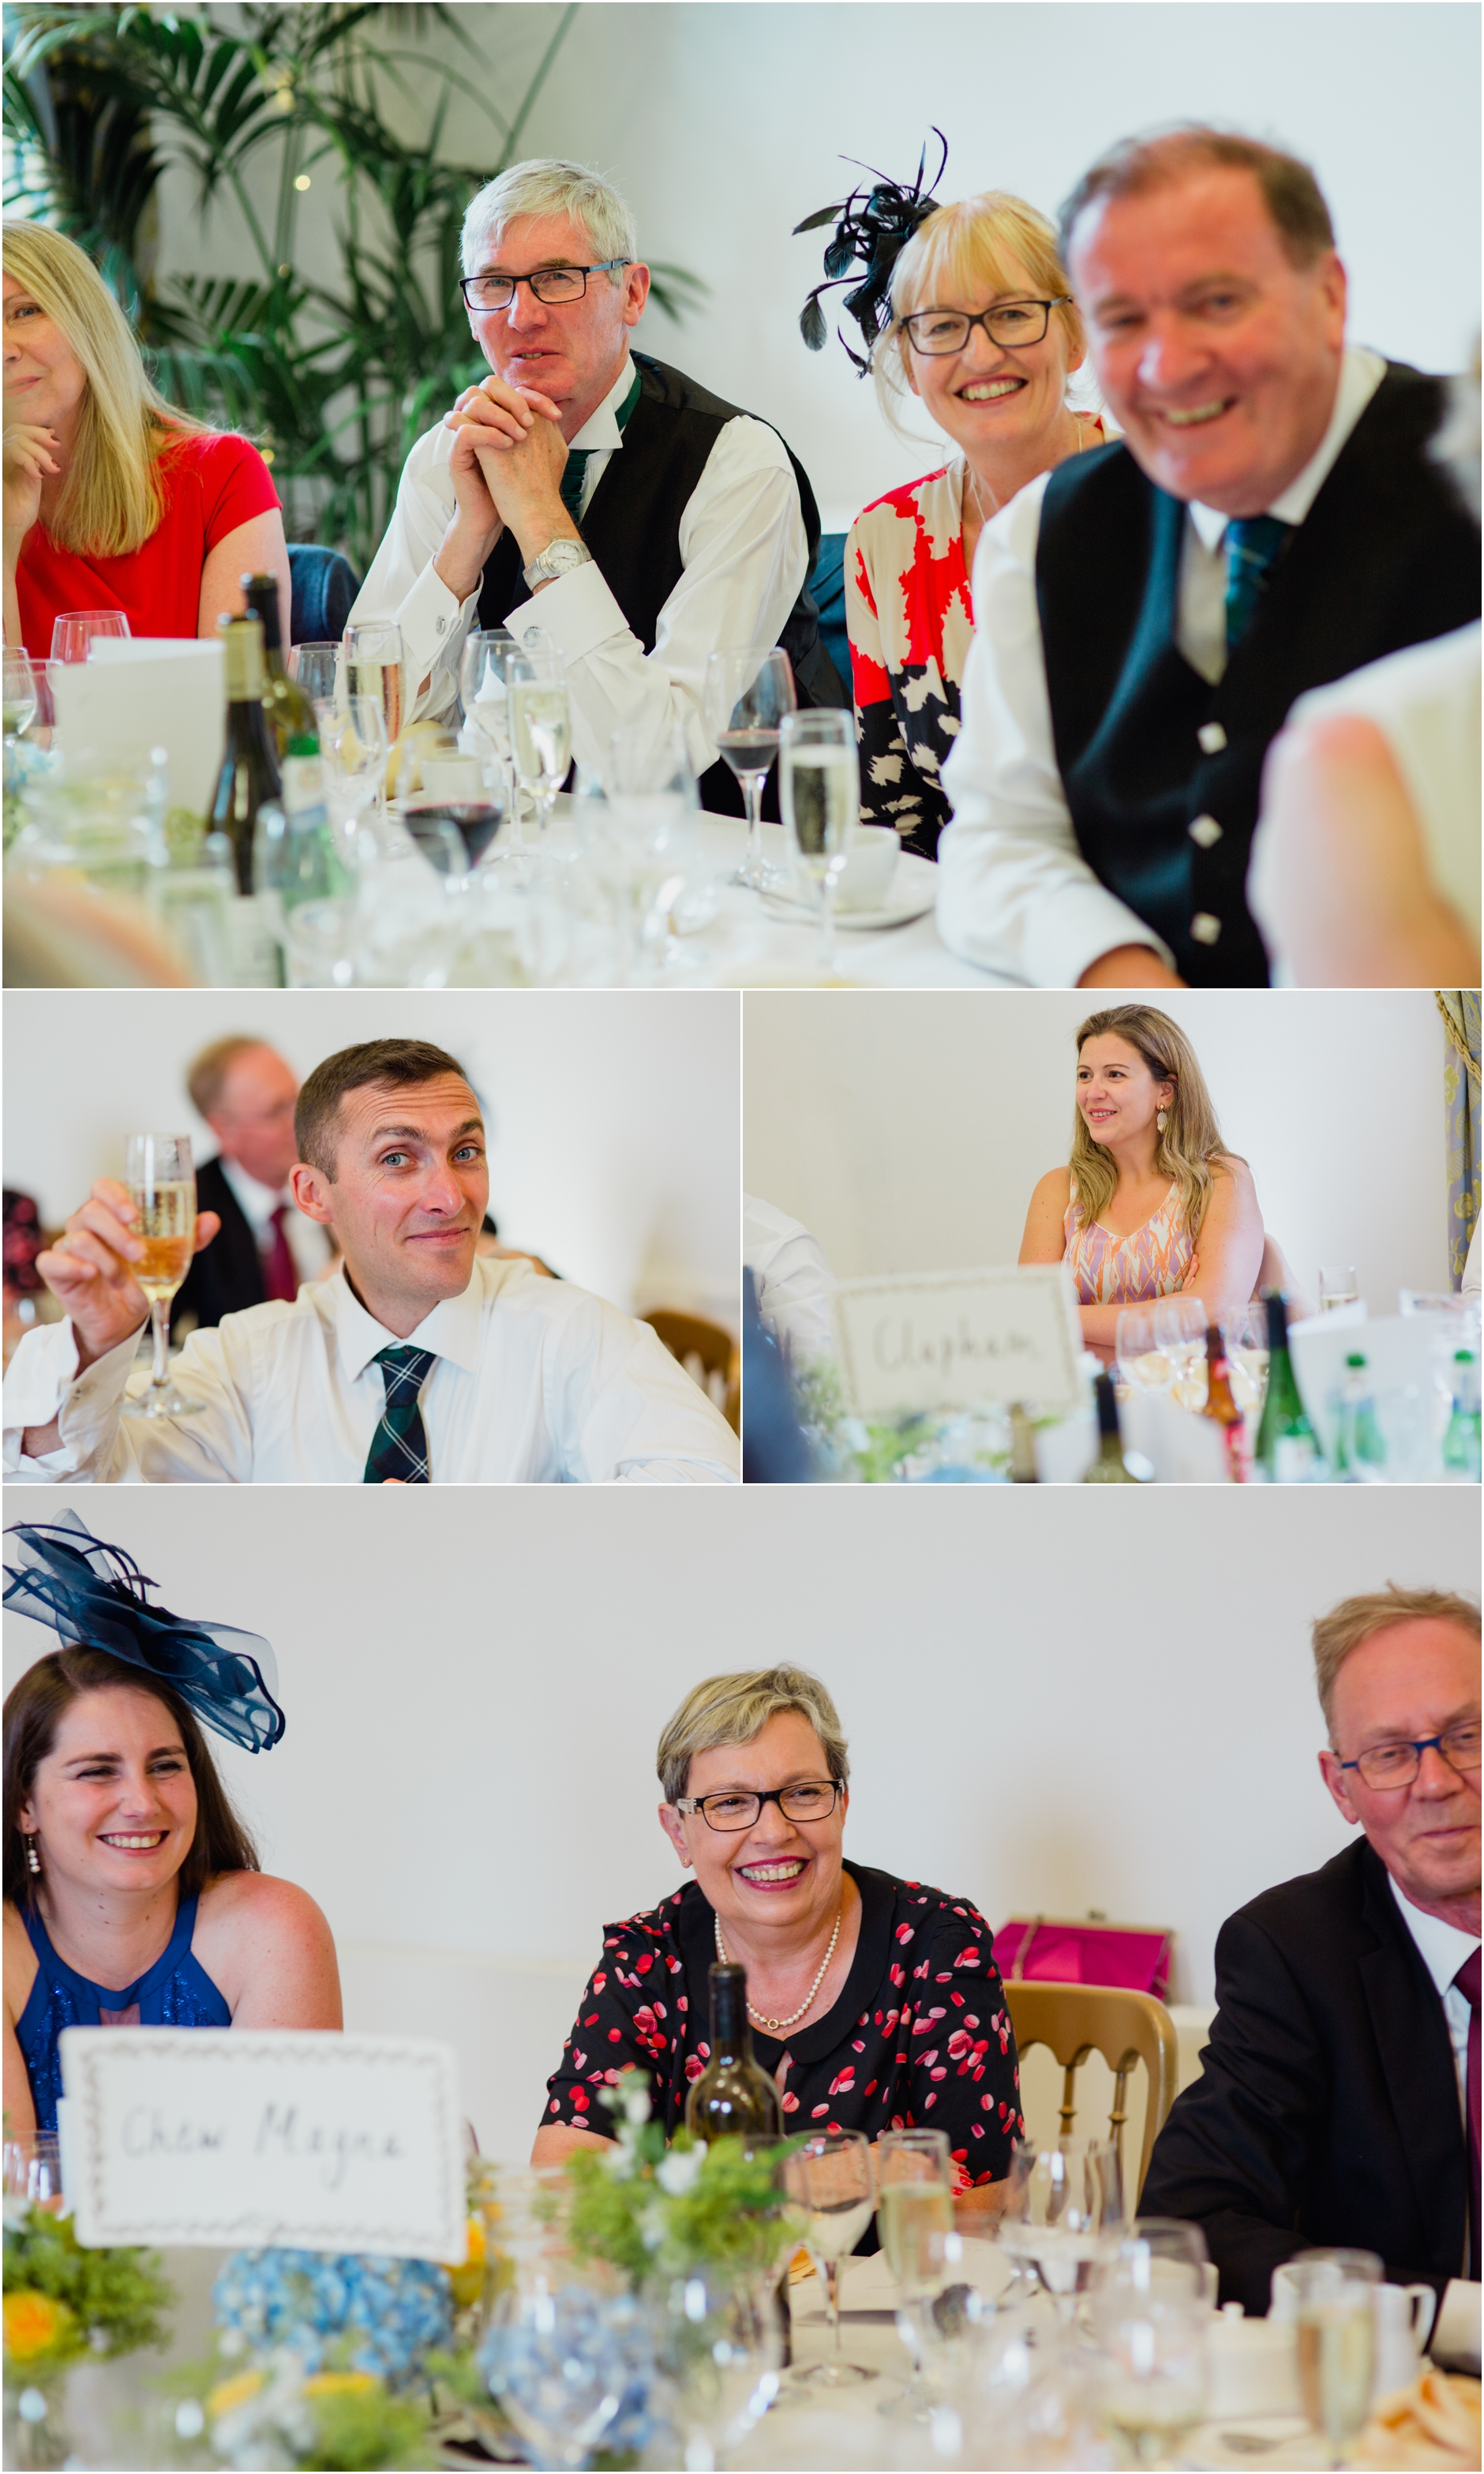 summer wedding at royal botanical gardens edinburgh 2018 2019